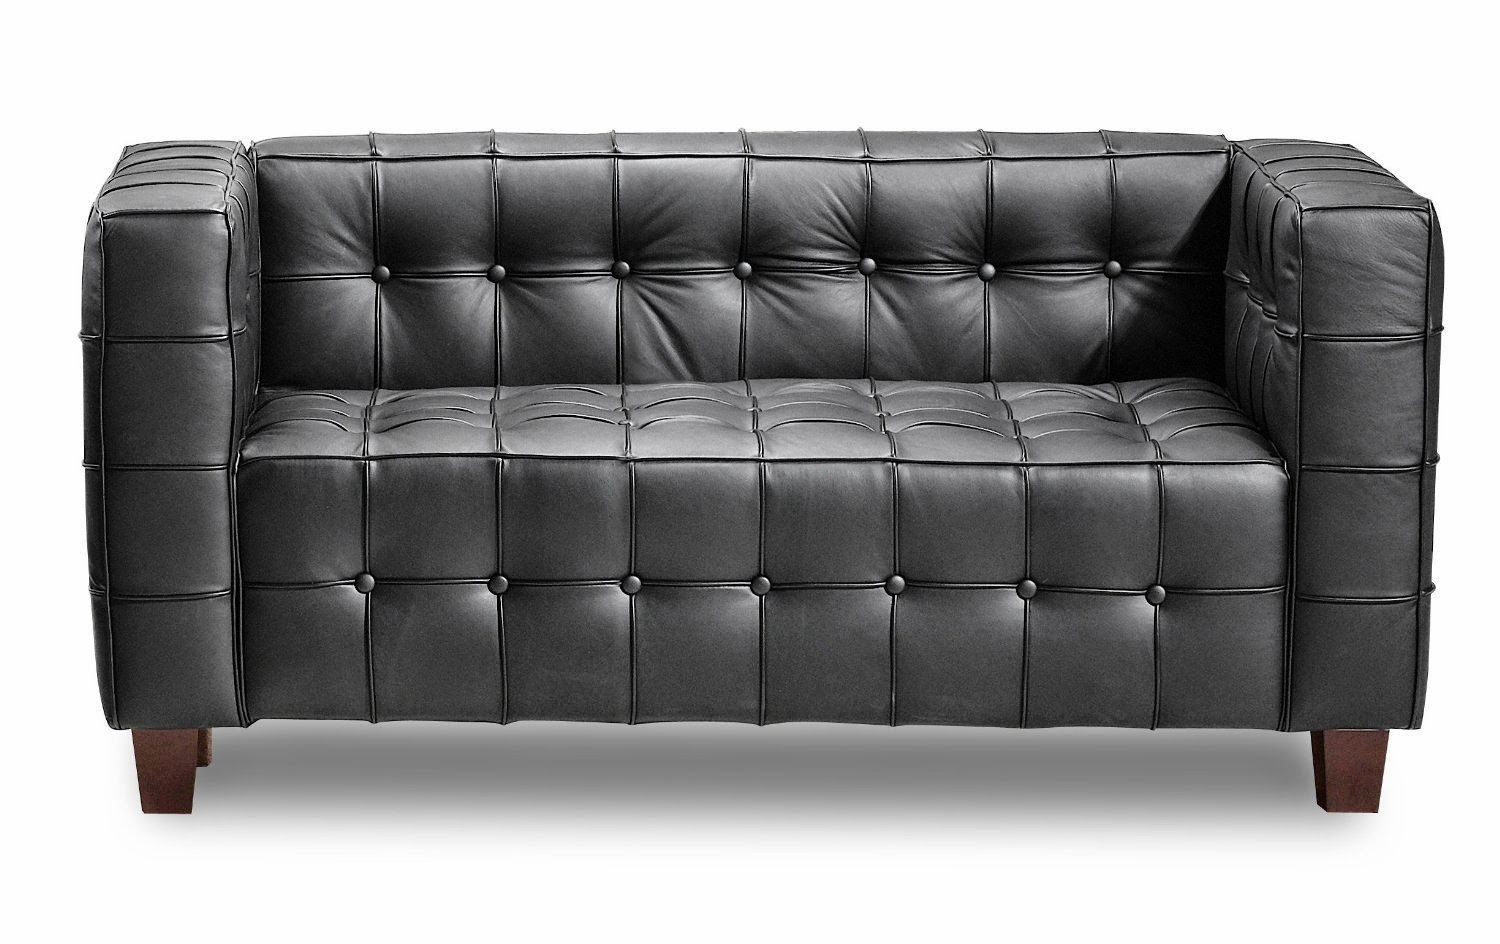 chesterfield sofa: modern chesterfield sofa